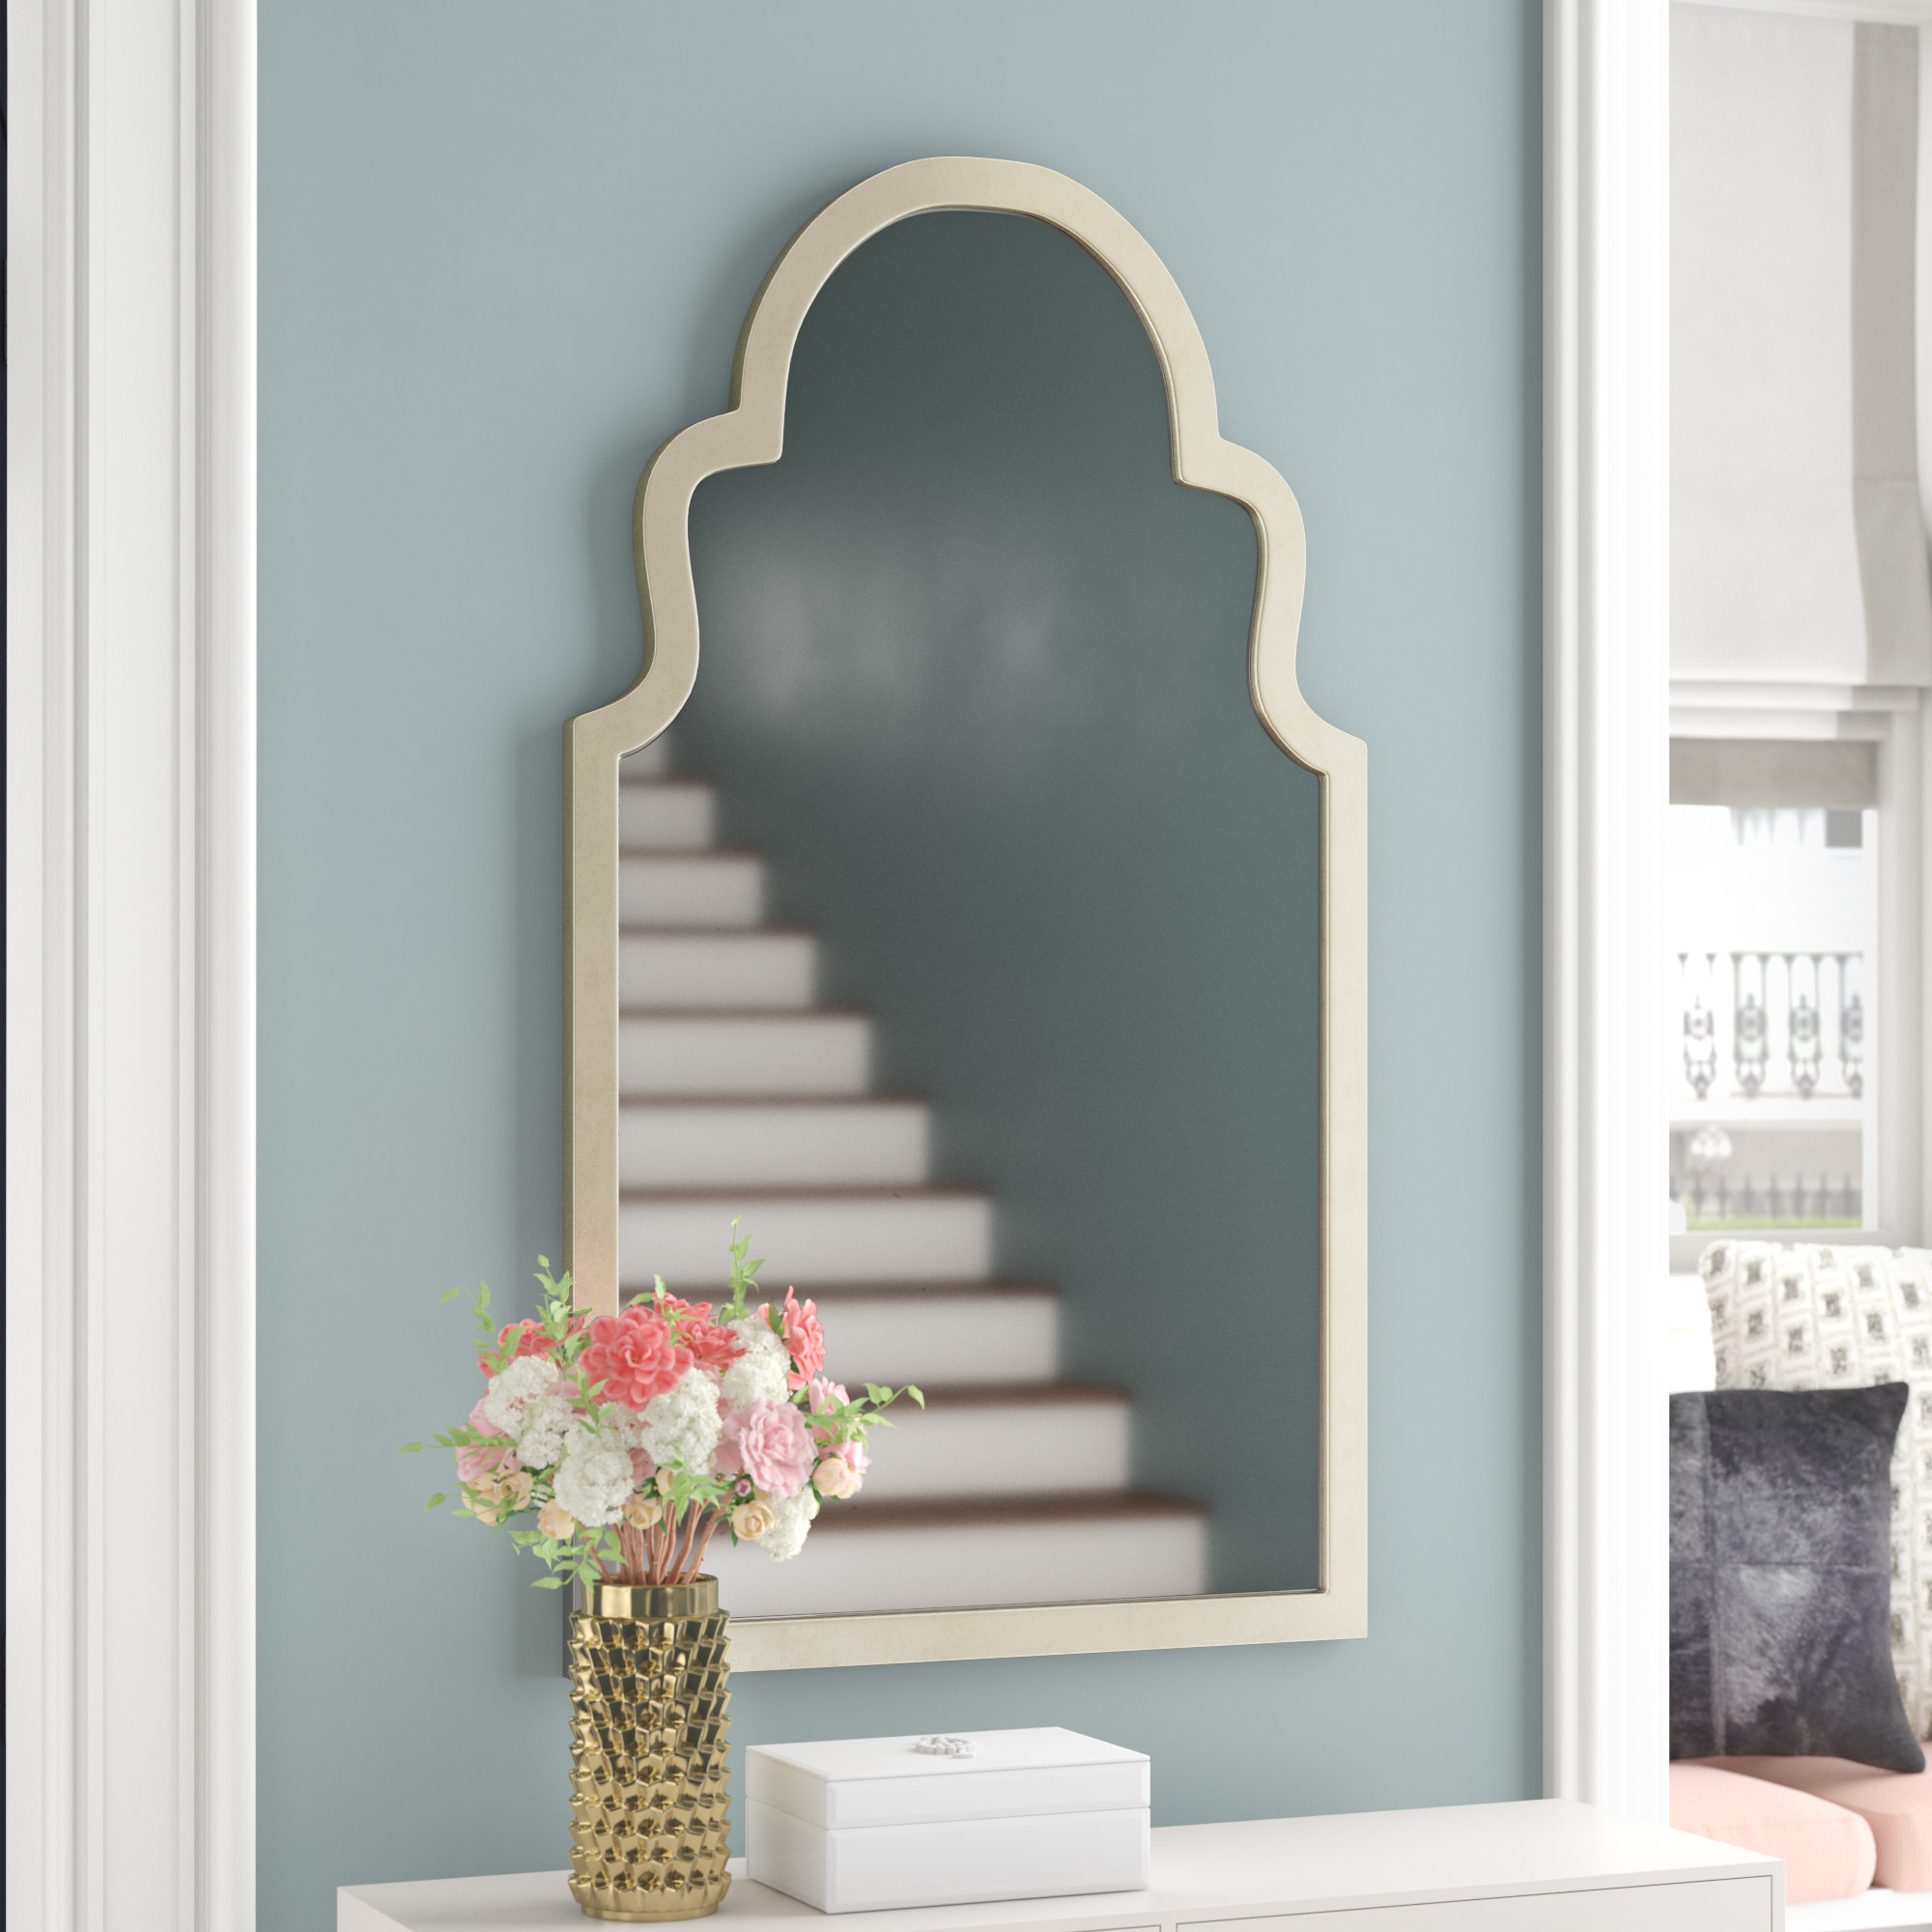 Willa Arlo Interiors Arch Top Vertical Wall Mirror & Reviews For Arch Vertical Wall Mirrors (Image 20 of 20)